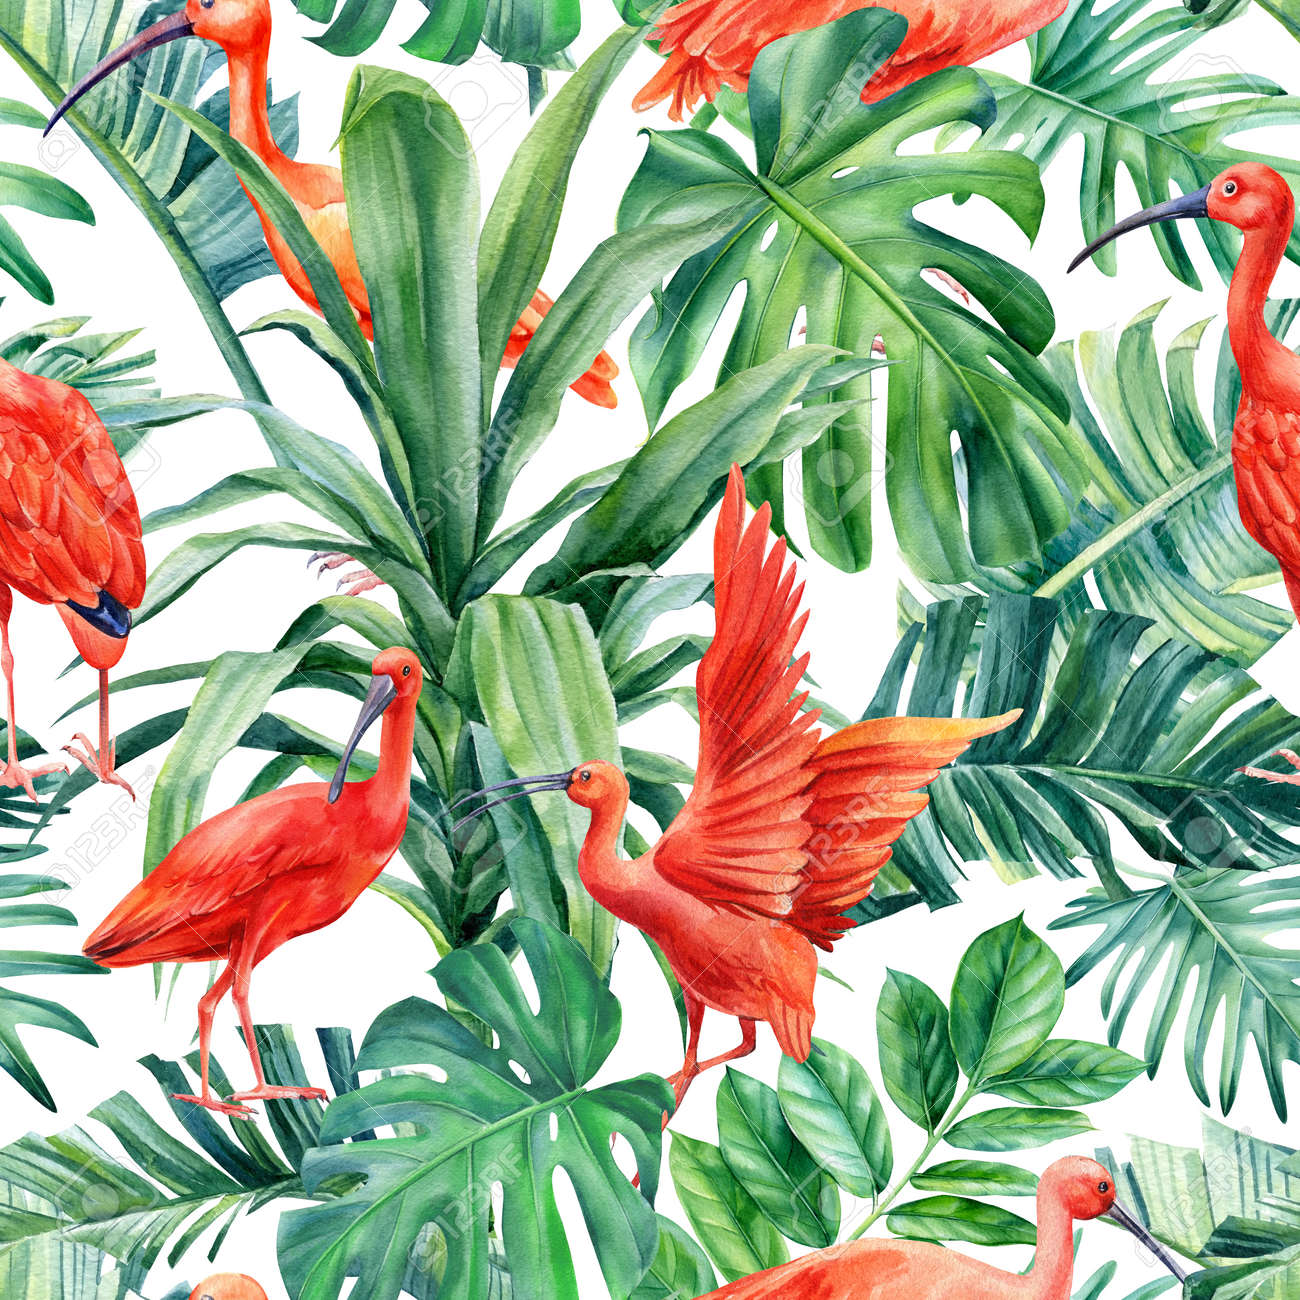 Tropical palm leaves and ibis birds on an isolated background. Watercolor illustration, seamless pattern - 168095404